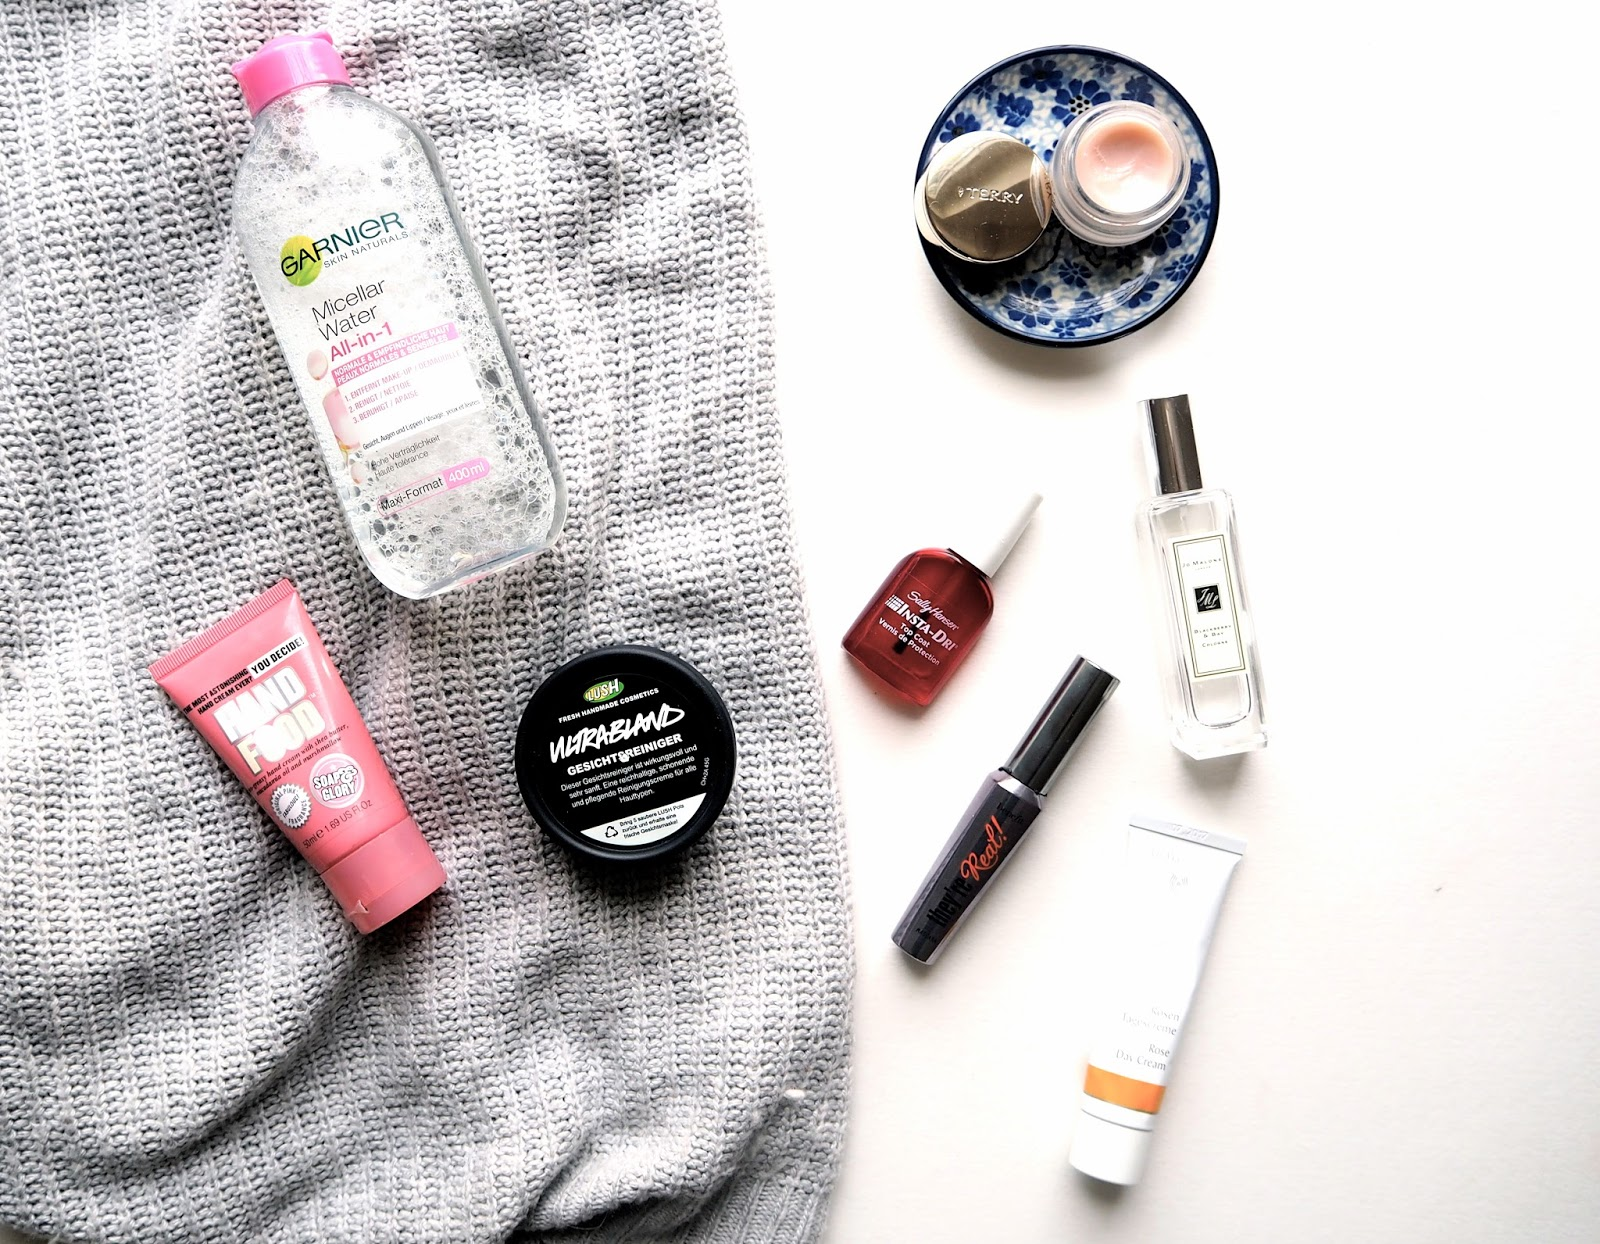 Most Repurchased Beauty, skincare, makeup, garnier, benefit they're real, jo malone, perfume, by terry baume de rose, lush ultrabland, dr hauschka rose day cream, soap and glory hand food, sally hansen insta dri, beauty